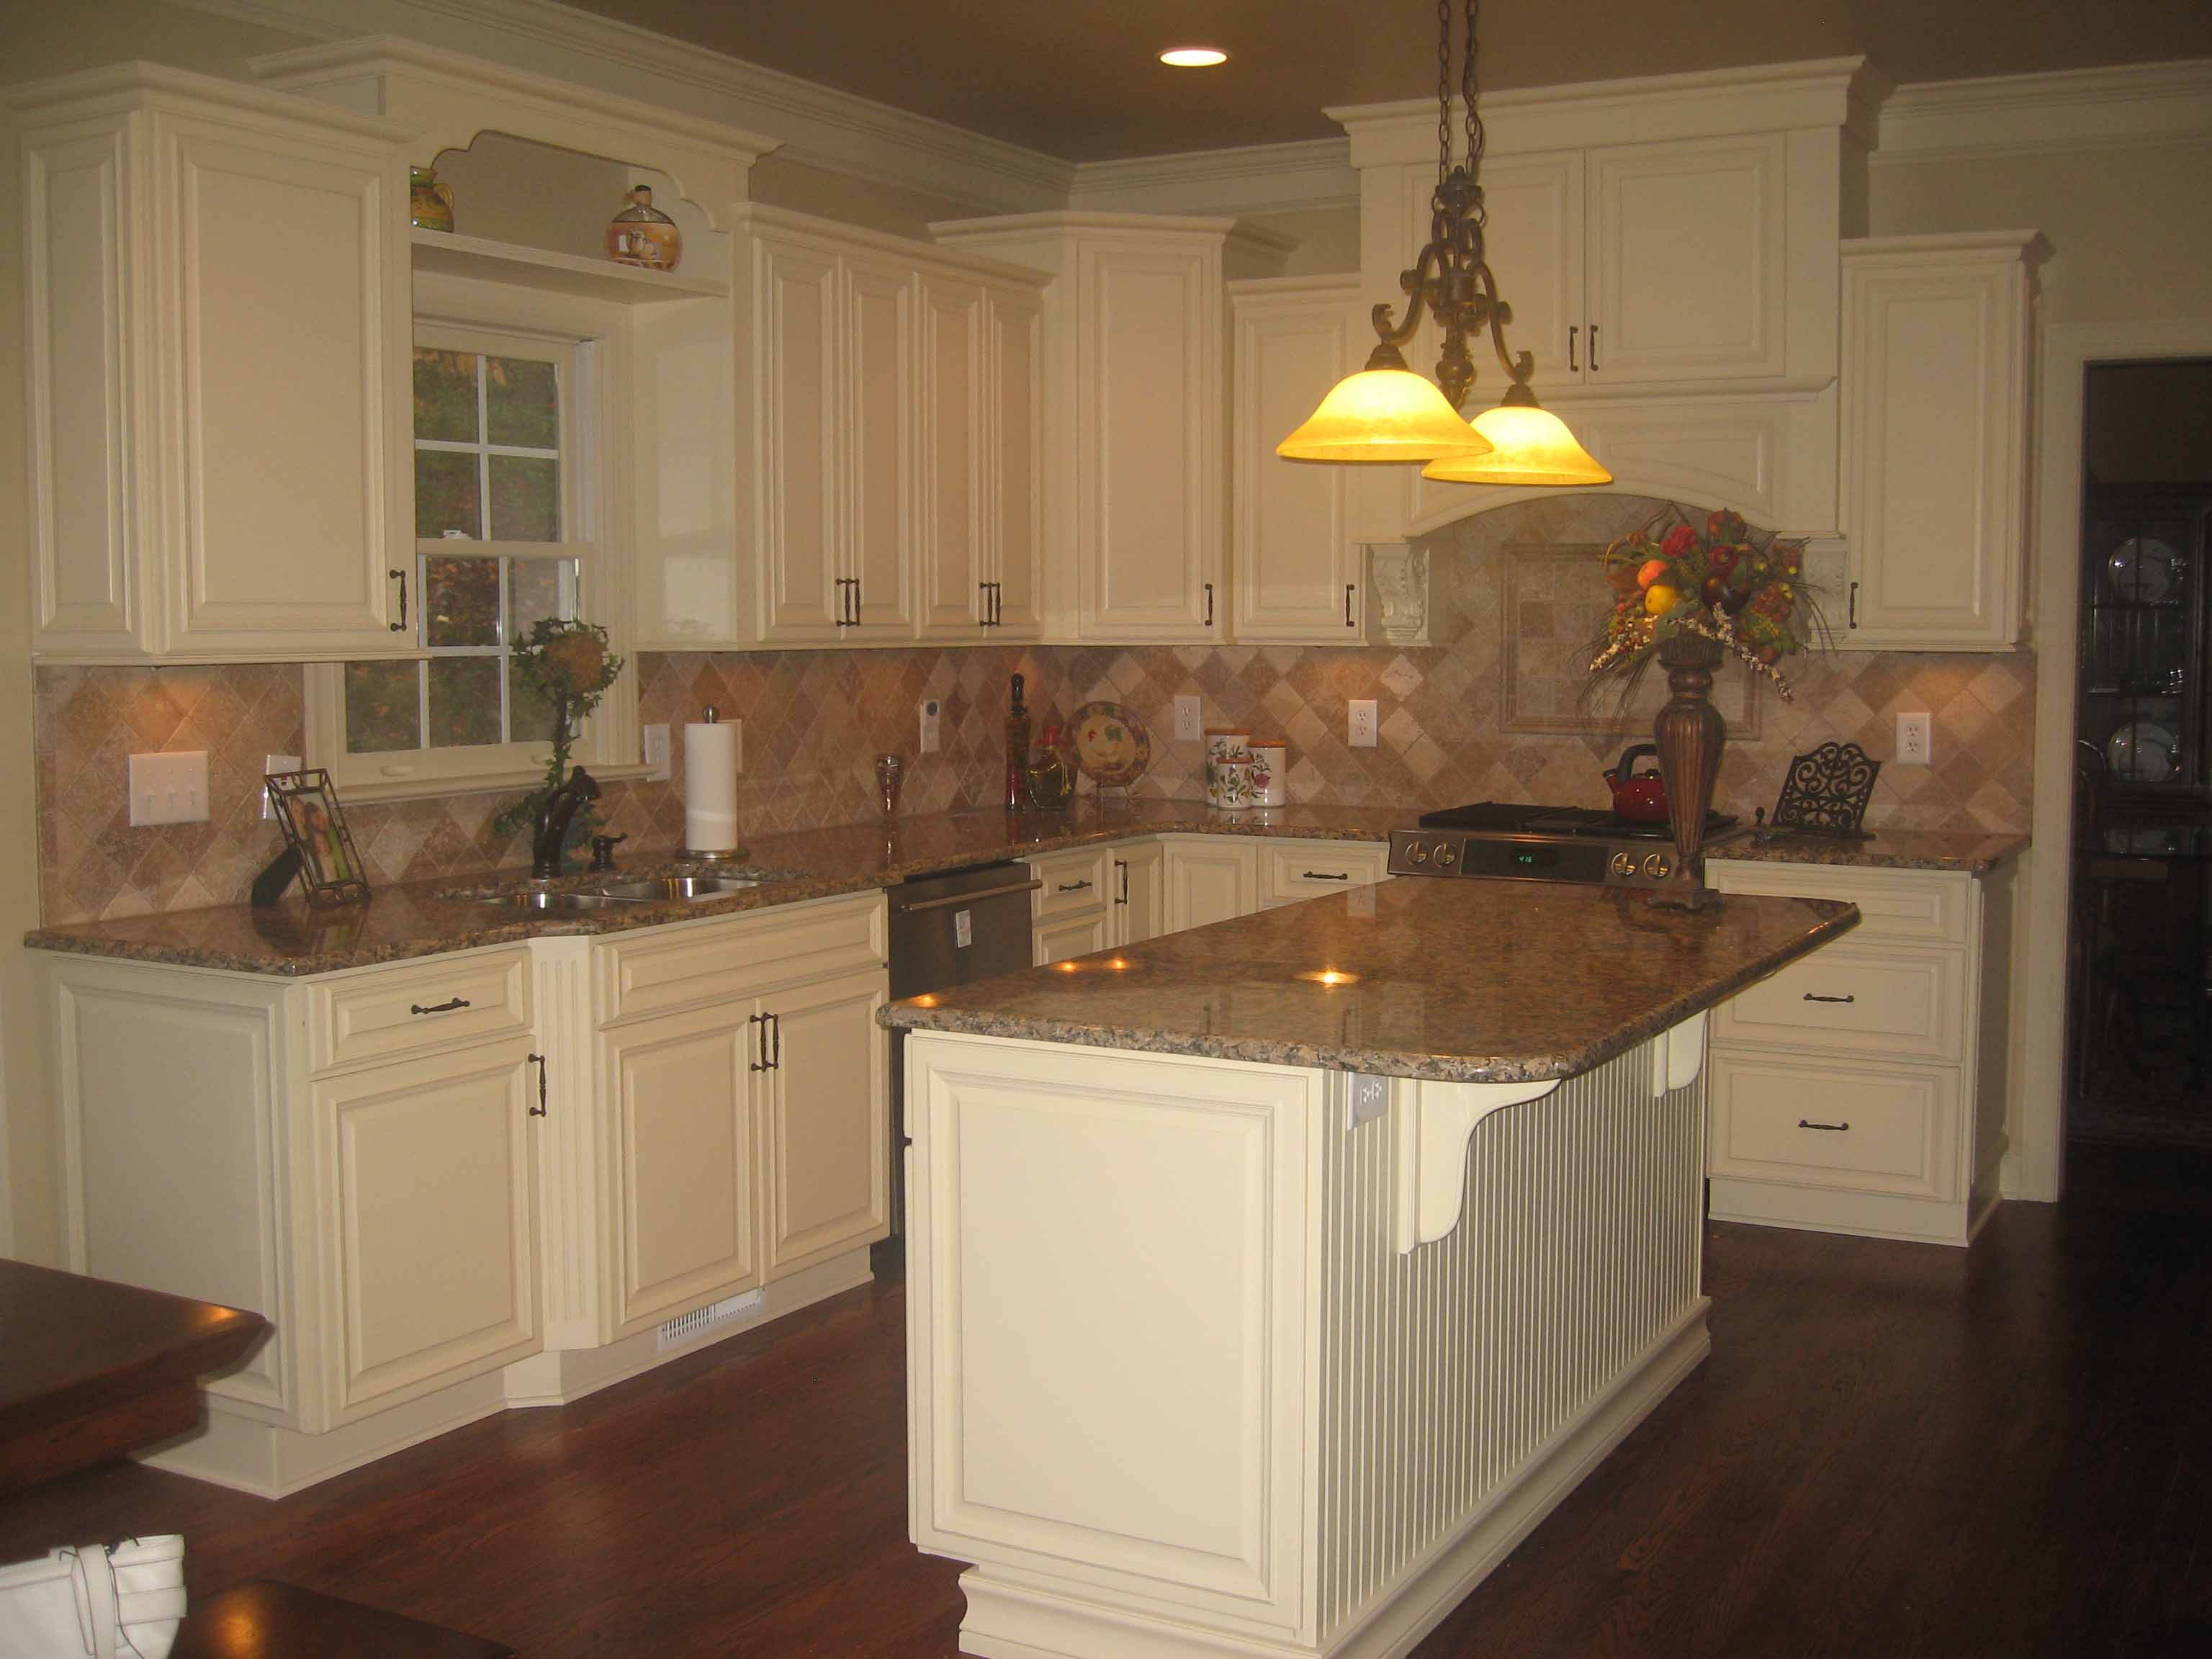 onlinecabinetsdirect inexpensive kitchen cabinets Attaberry 4 White Shaker IMG copy